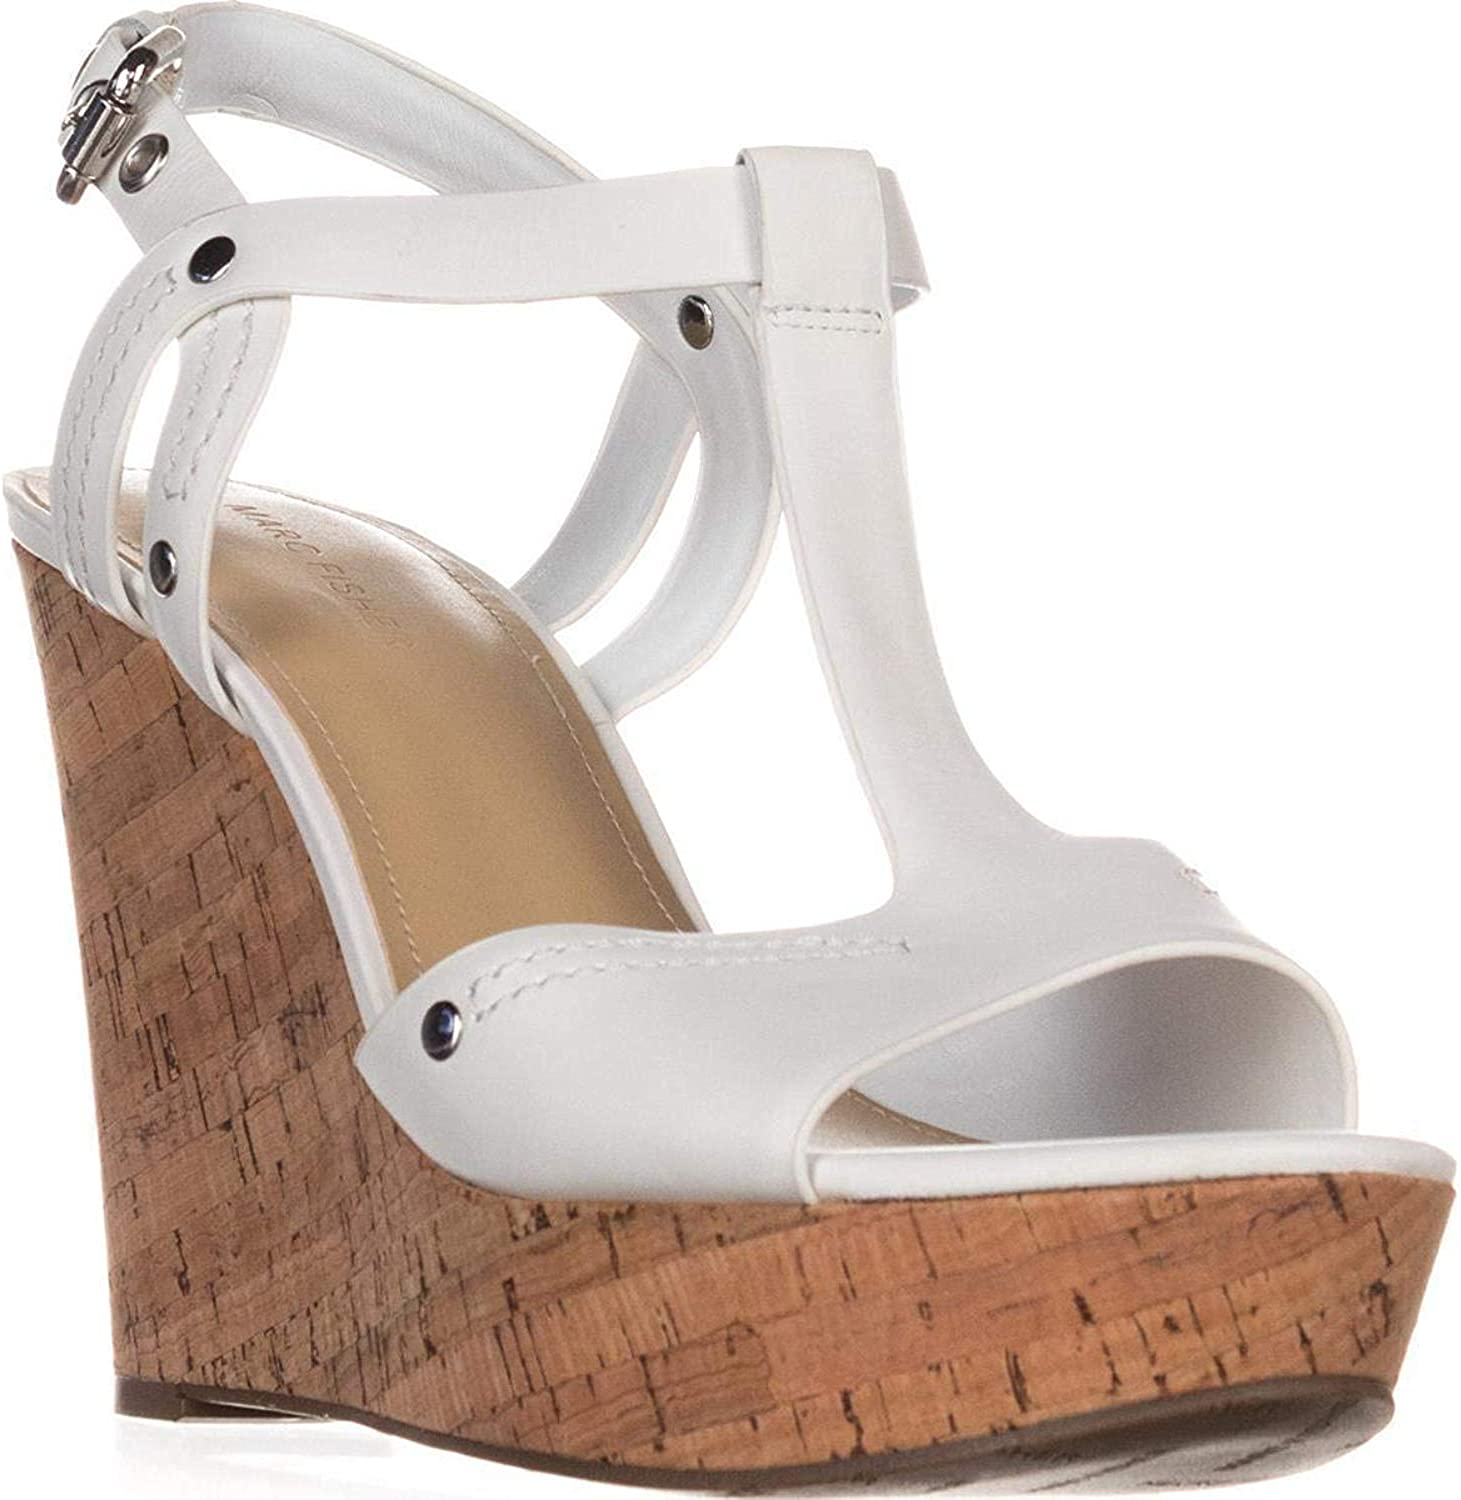 Marc Fisher Womens Helma Leather Open Toe Casual Platform Sandals